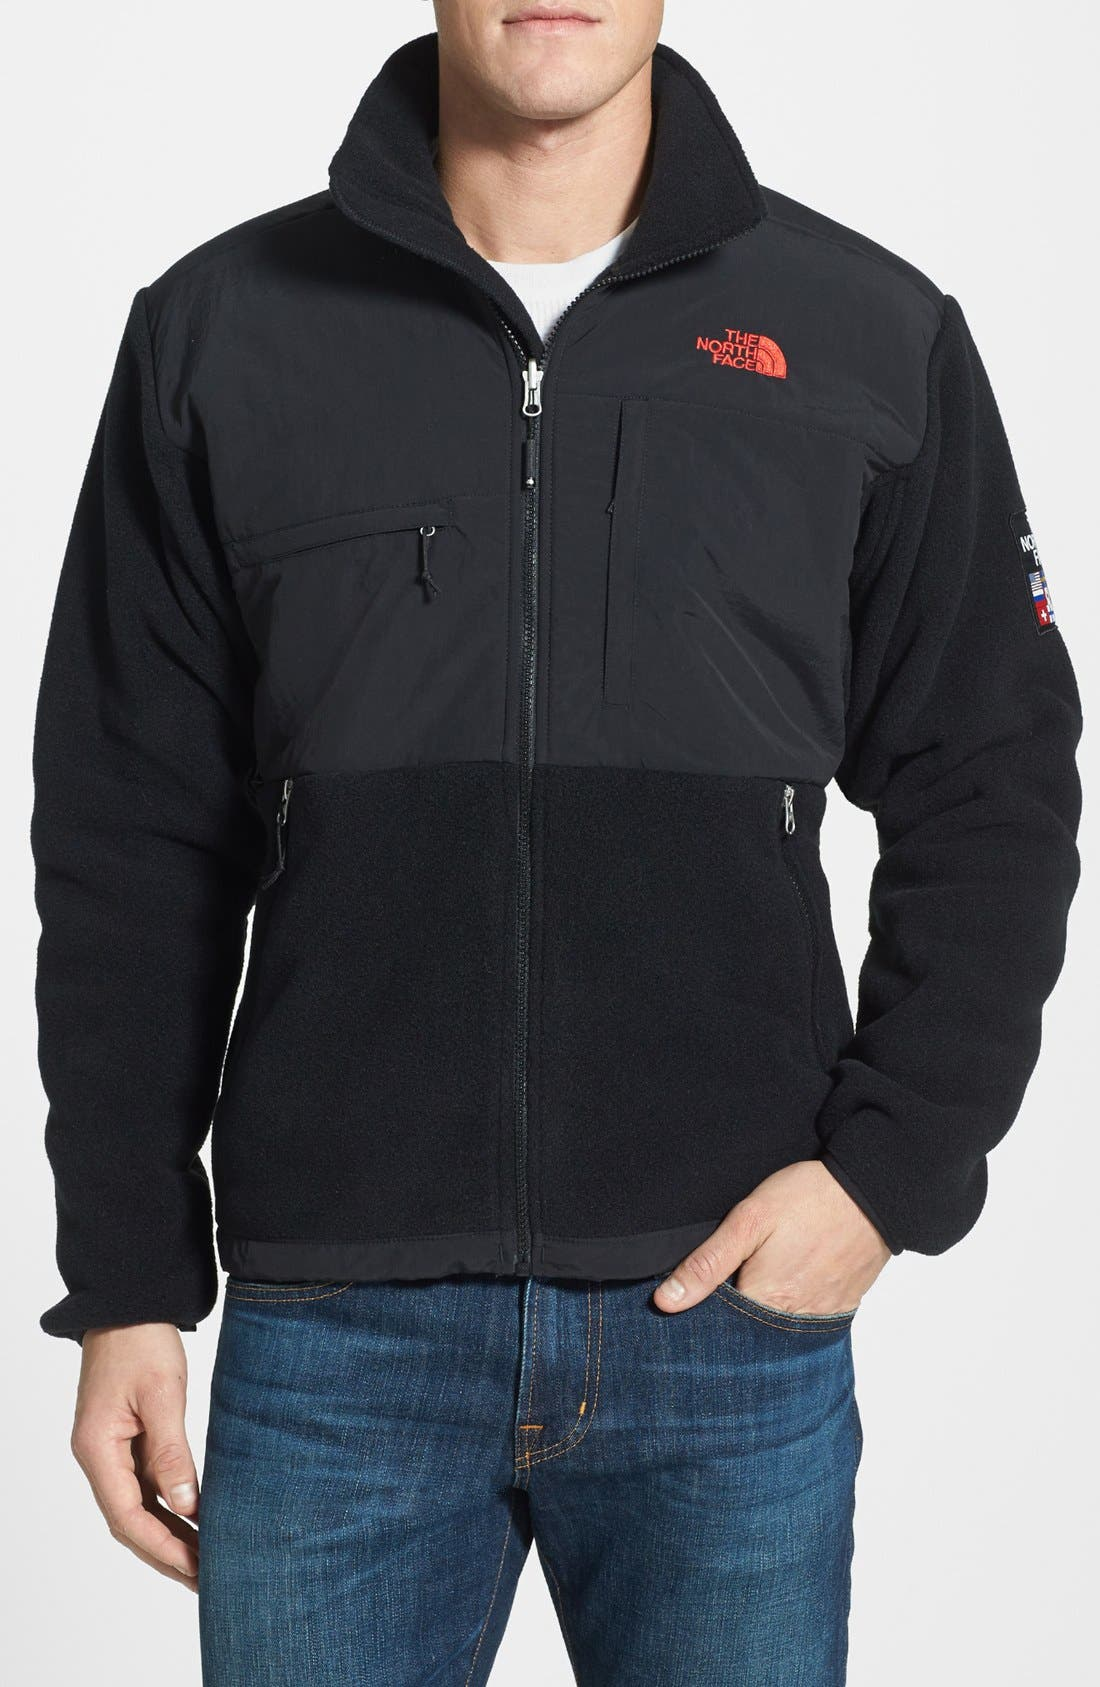 Main Image - The North Face 'Denali - International Collection' Recycled Fleece Jacket